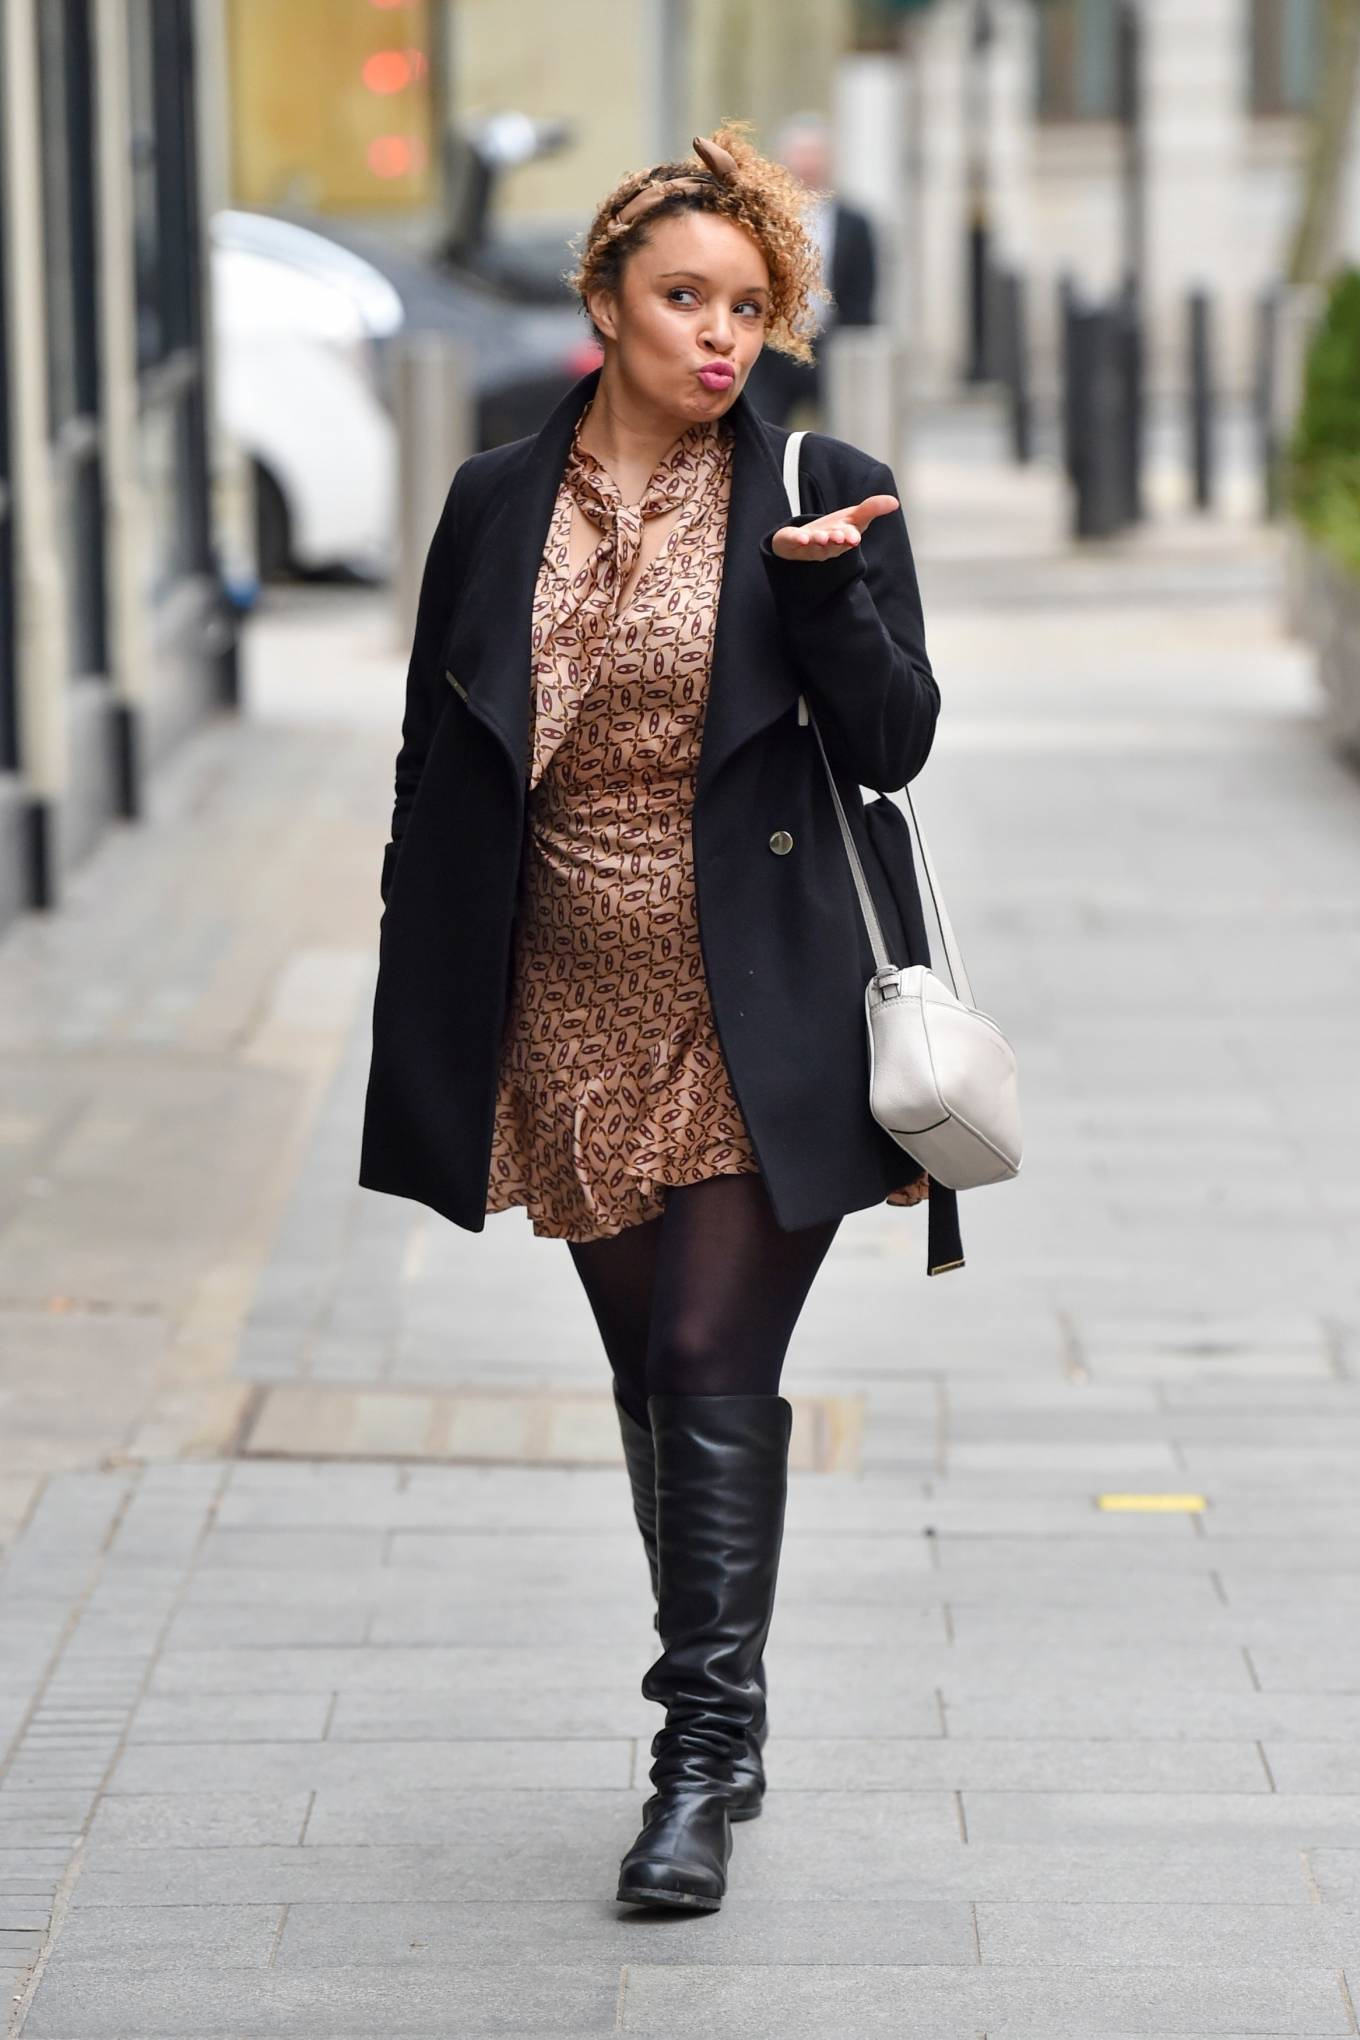 Pandora Christie - Seen arriving for her Heart Radio show in London